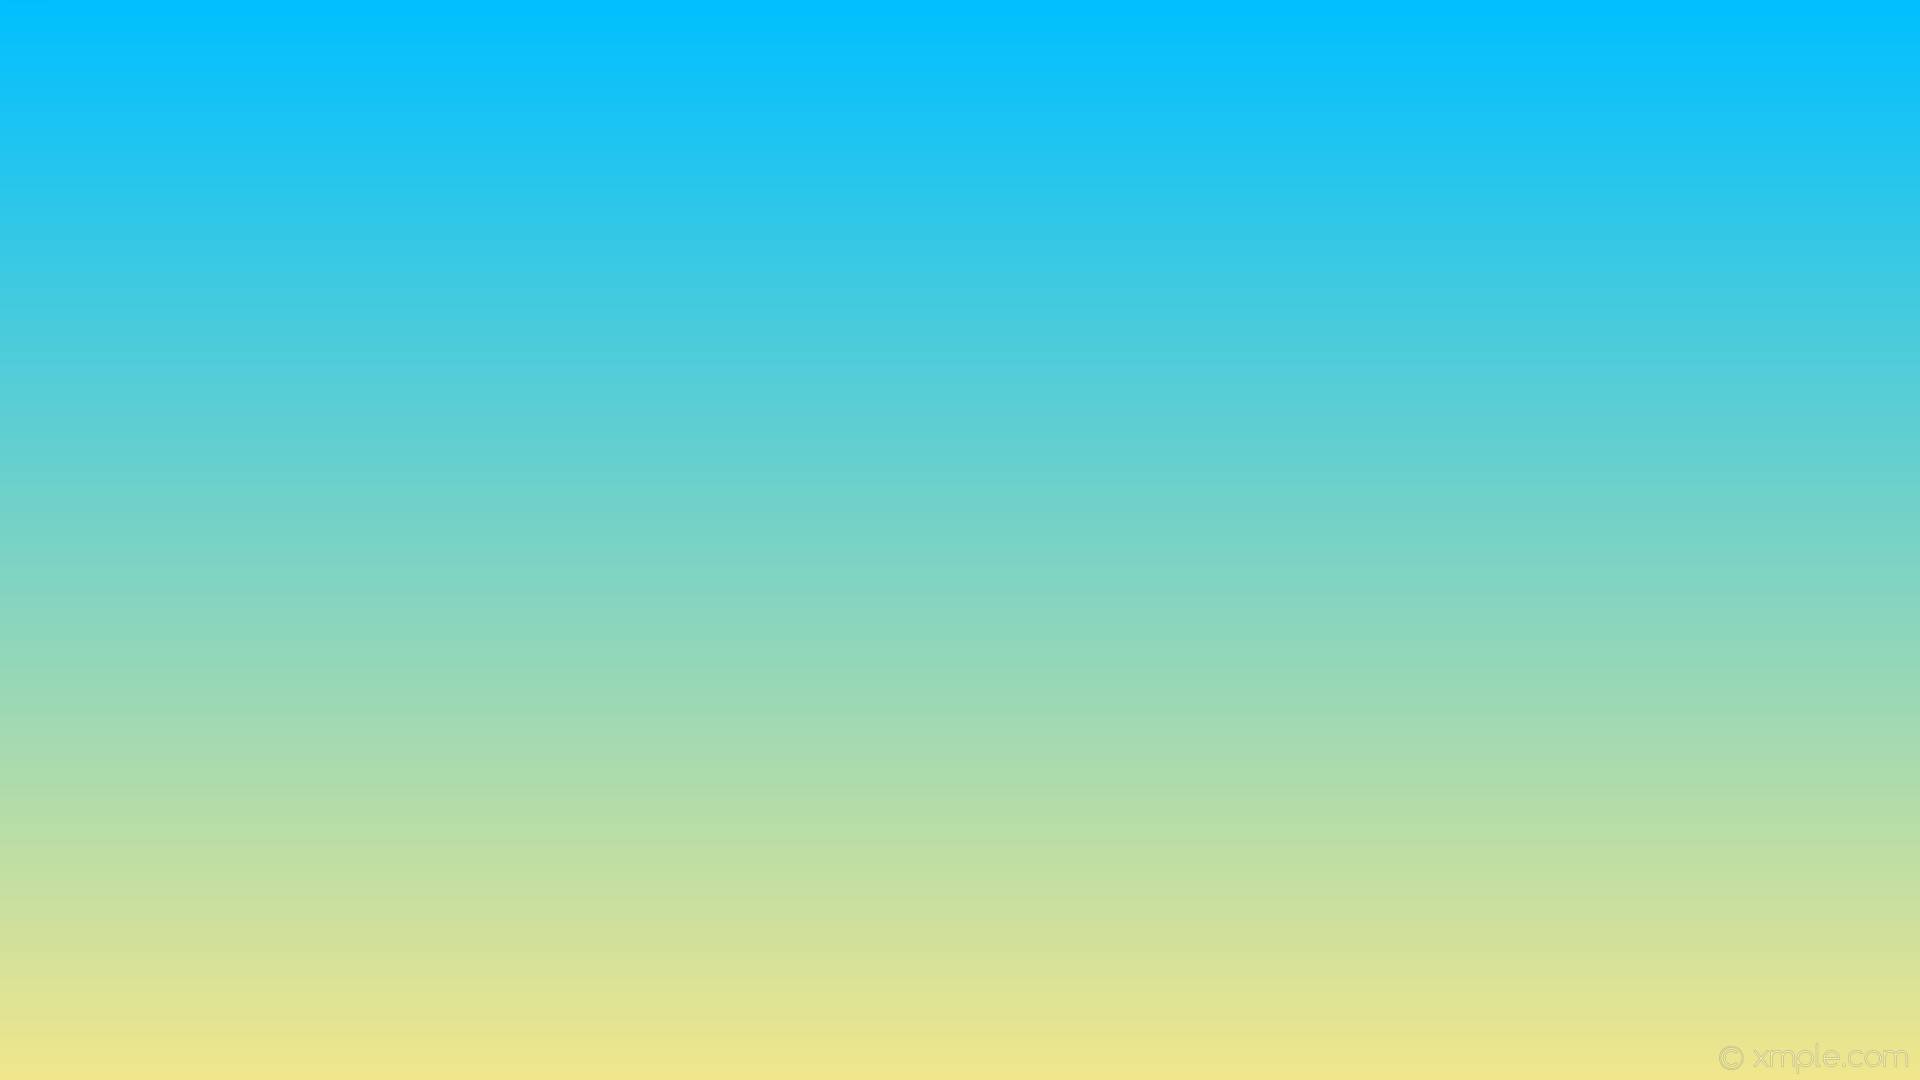 1920x1080 wallpaper linear blue yellow gradient khaki deep sky blue #f0e68c #00bfff  270°